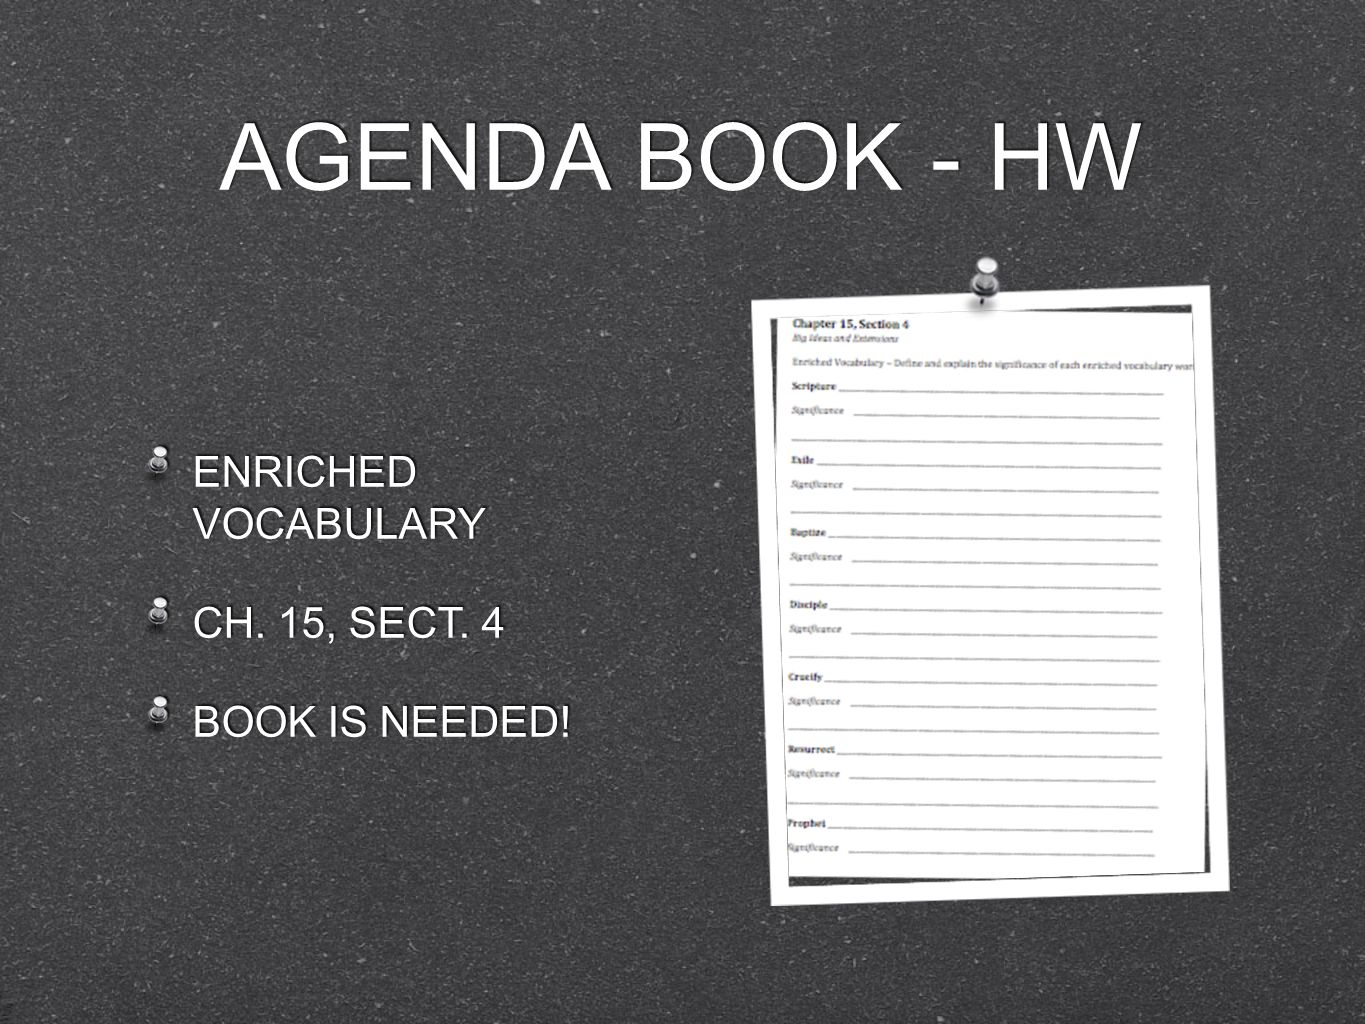 AGENDA BOOK - HW ENRICHED VOCABULARY CH. 15, SECT. 4 BOOK IS NEEDED!